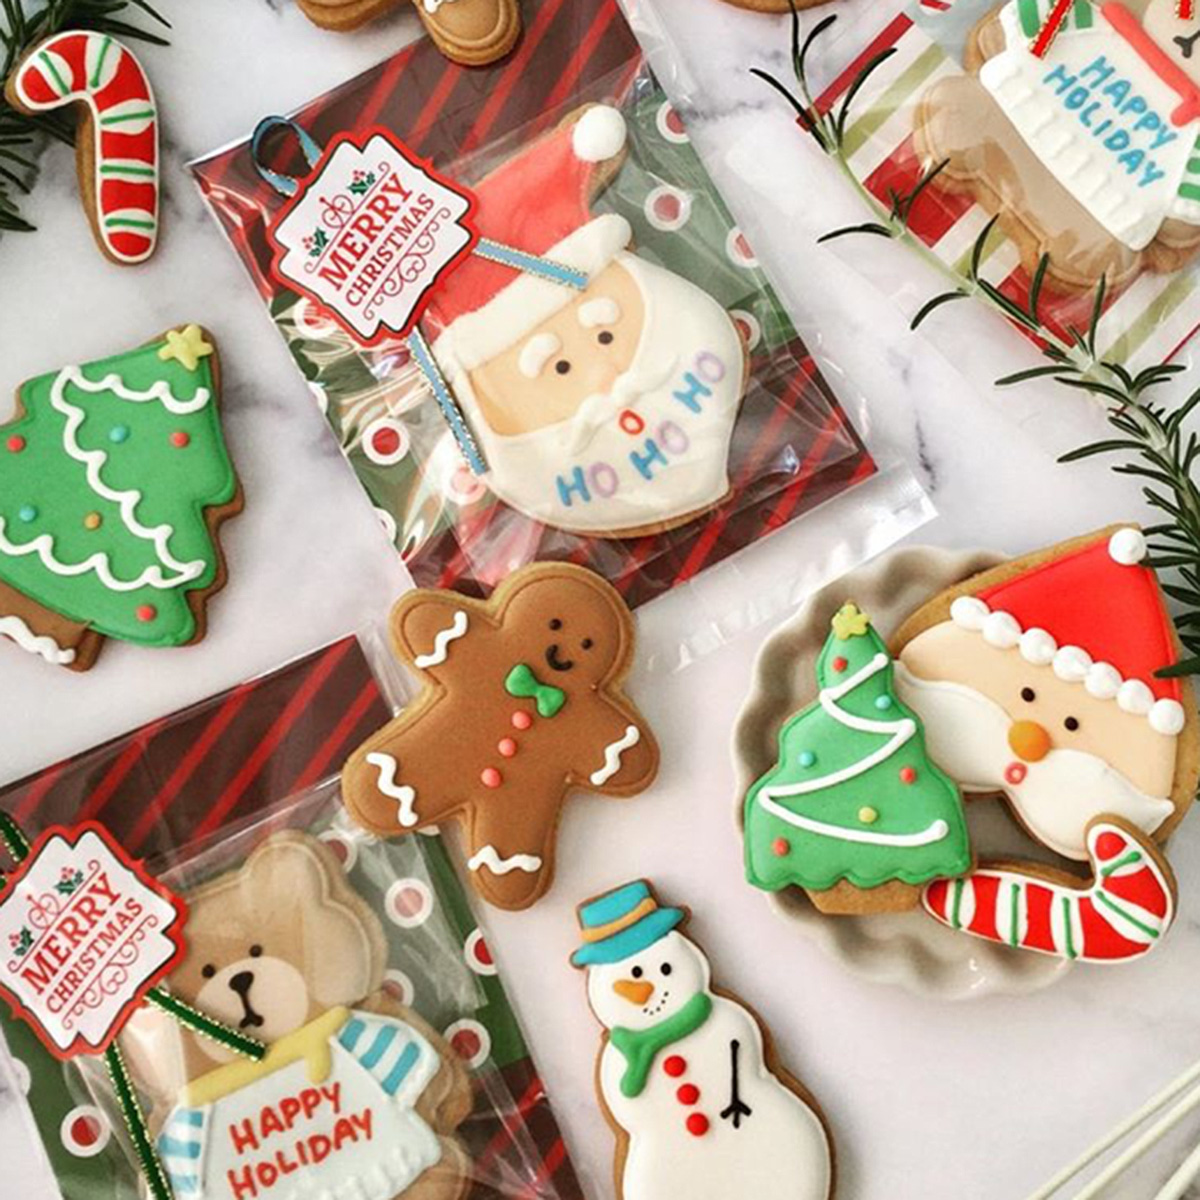 【Gallery】クリスマス2018 HOLIDAY COOKIES